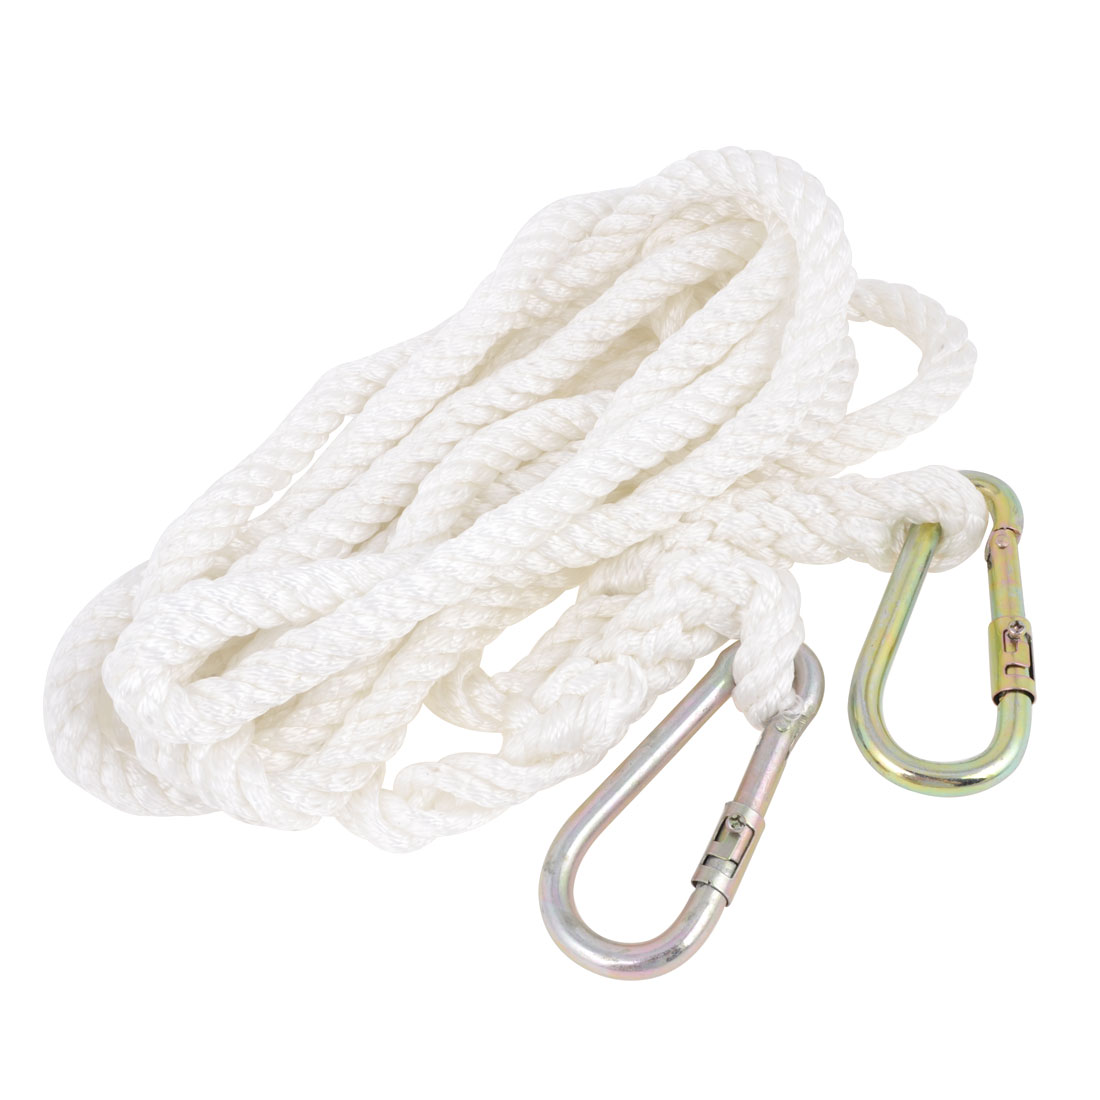 Outdoor Nylon Double Metal Hook Locking Hiking Safety Rope 5 Meters 16Ft Length White